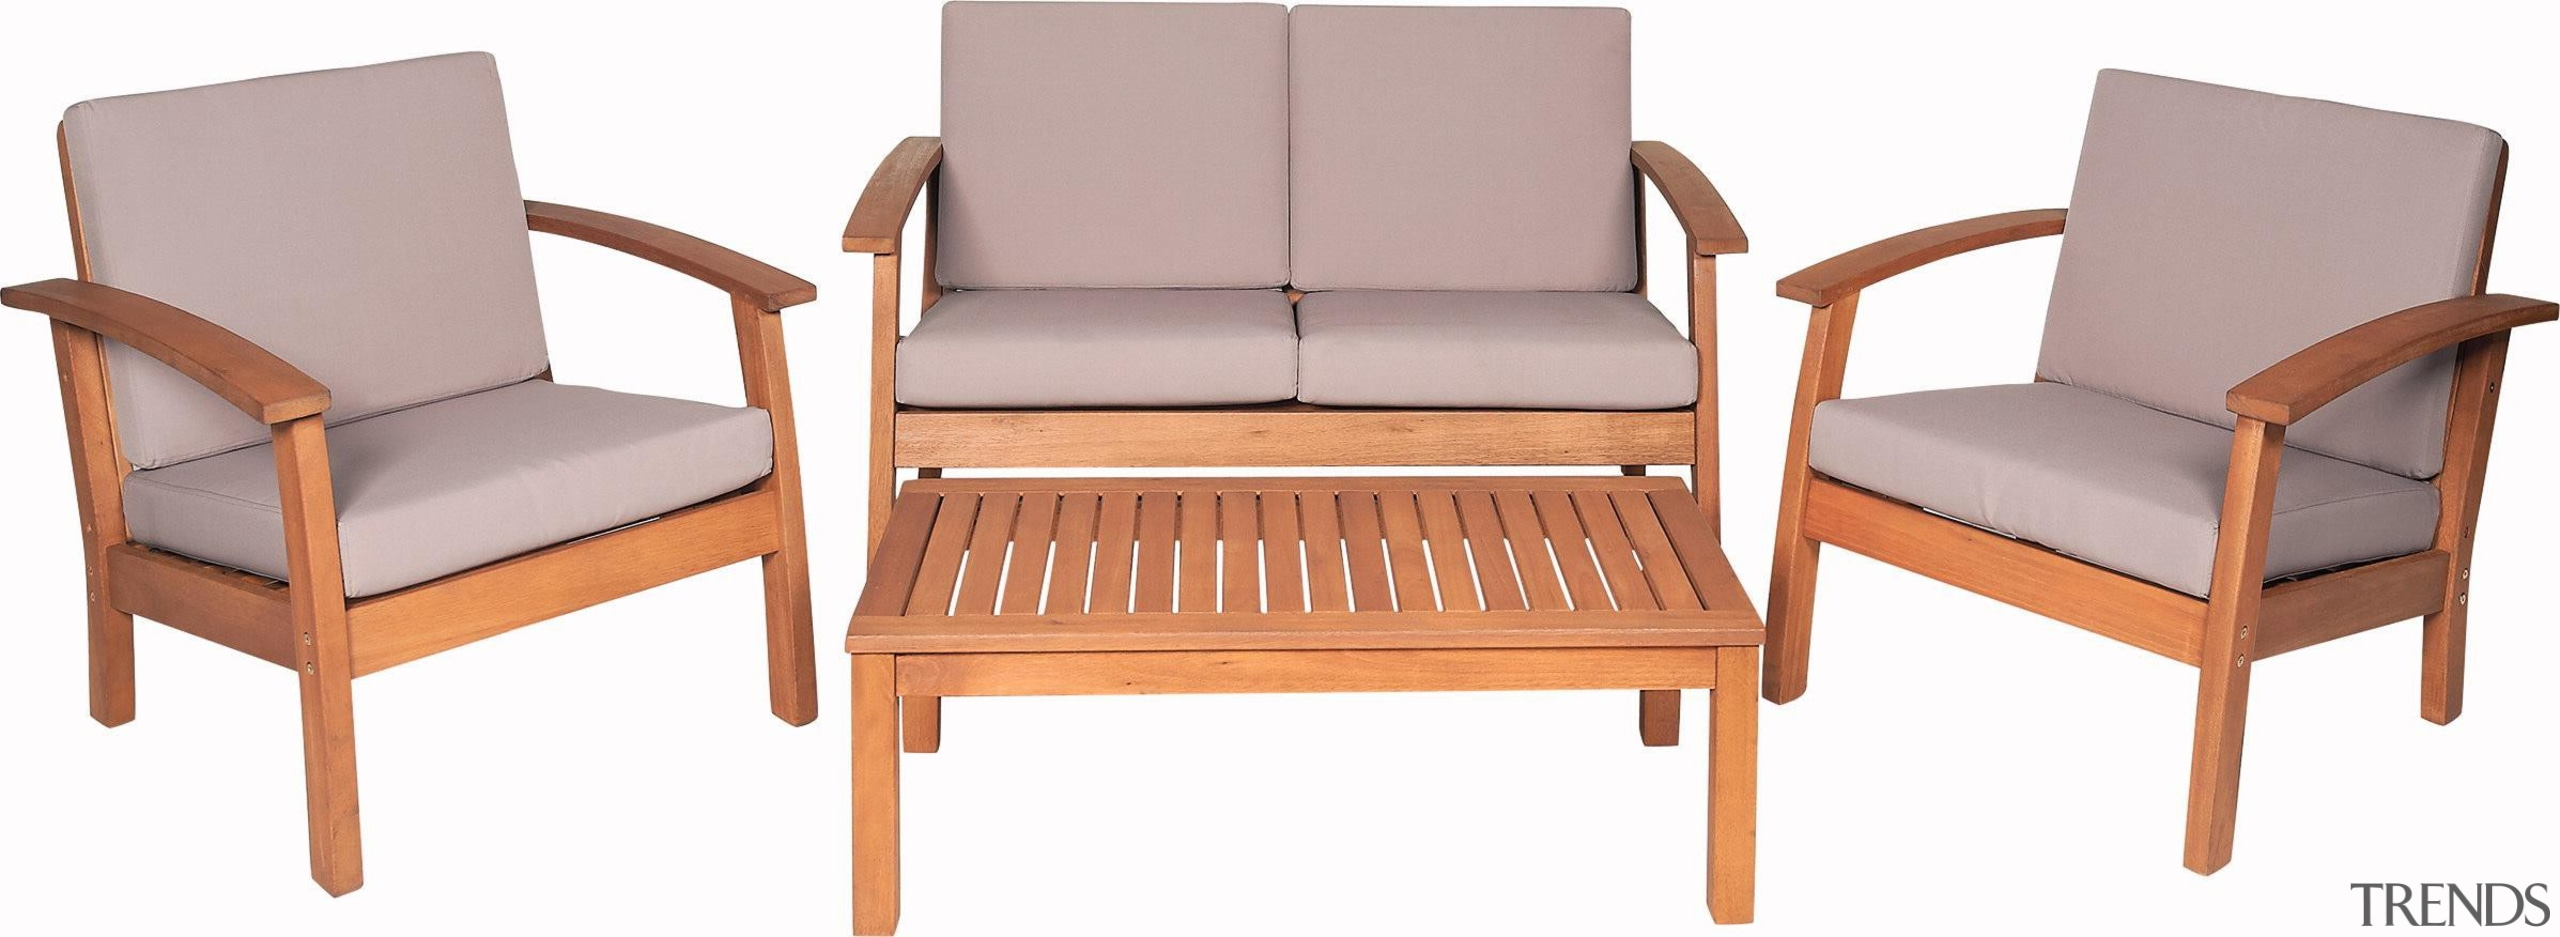 There's nothing quite like a Kiwi summer – armrest, chair, furniture, outdoor furniture, product, product design, table, white, gray